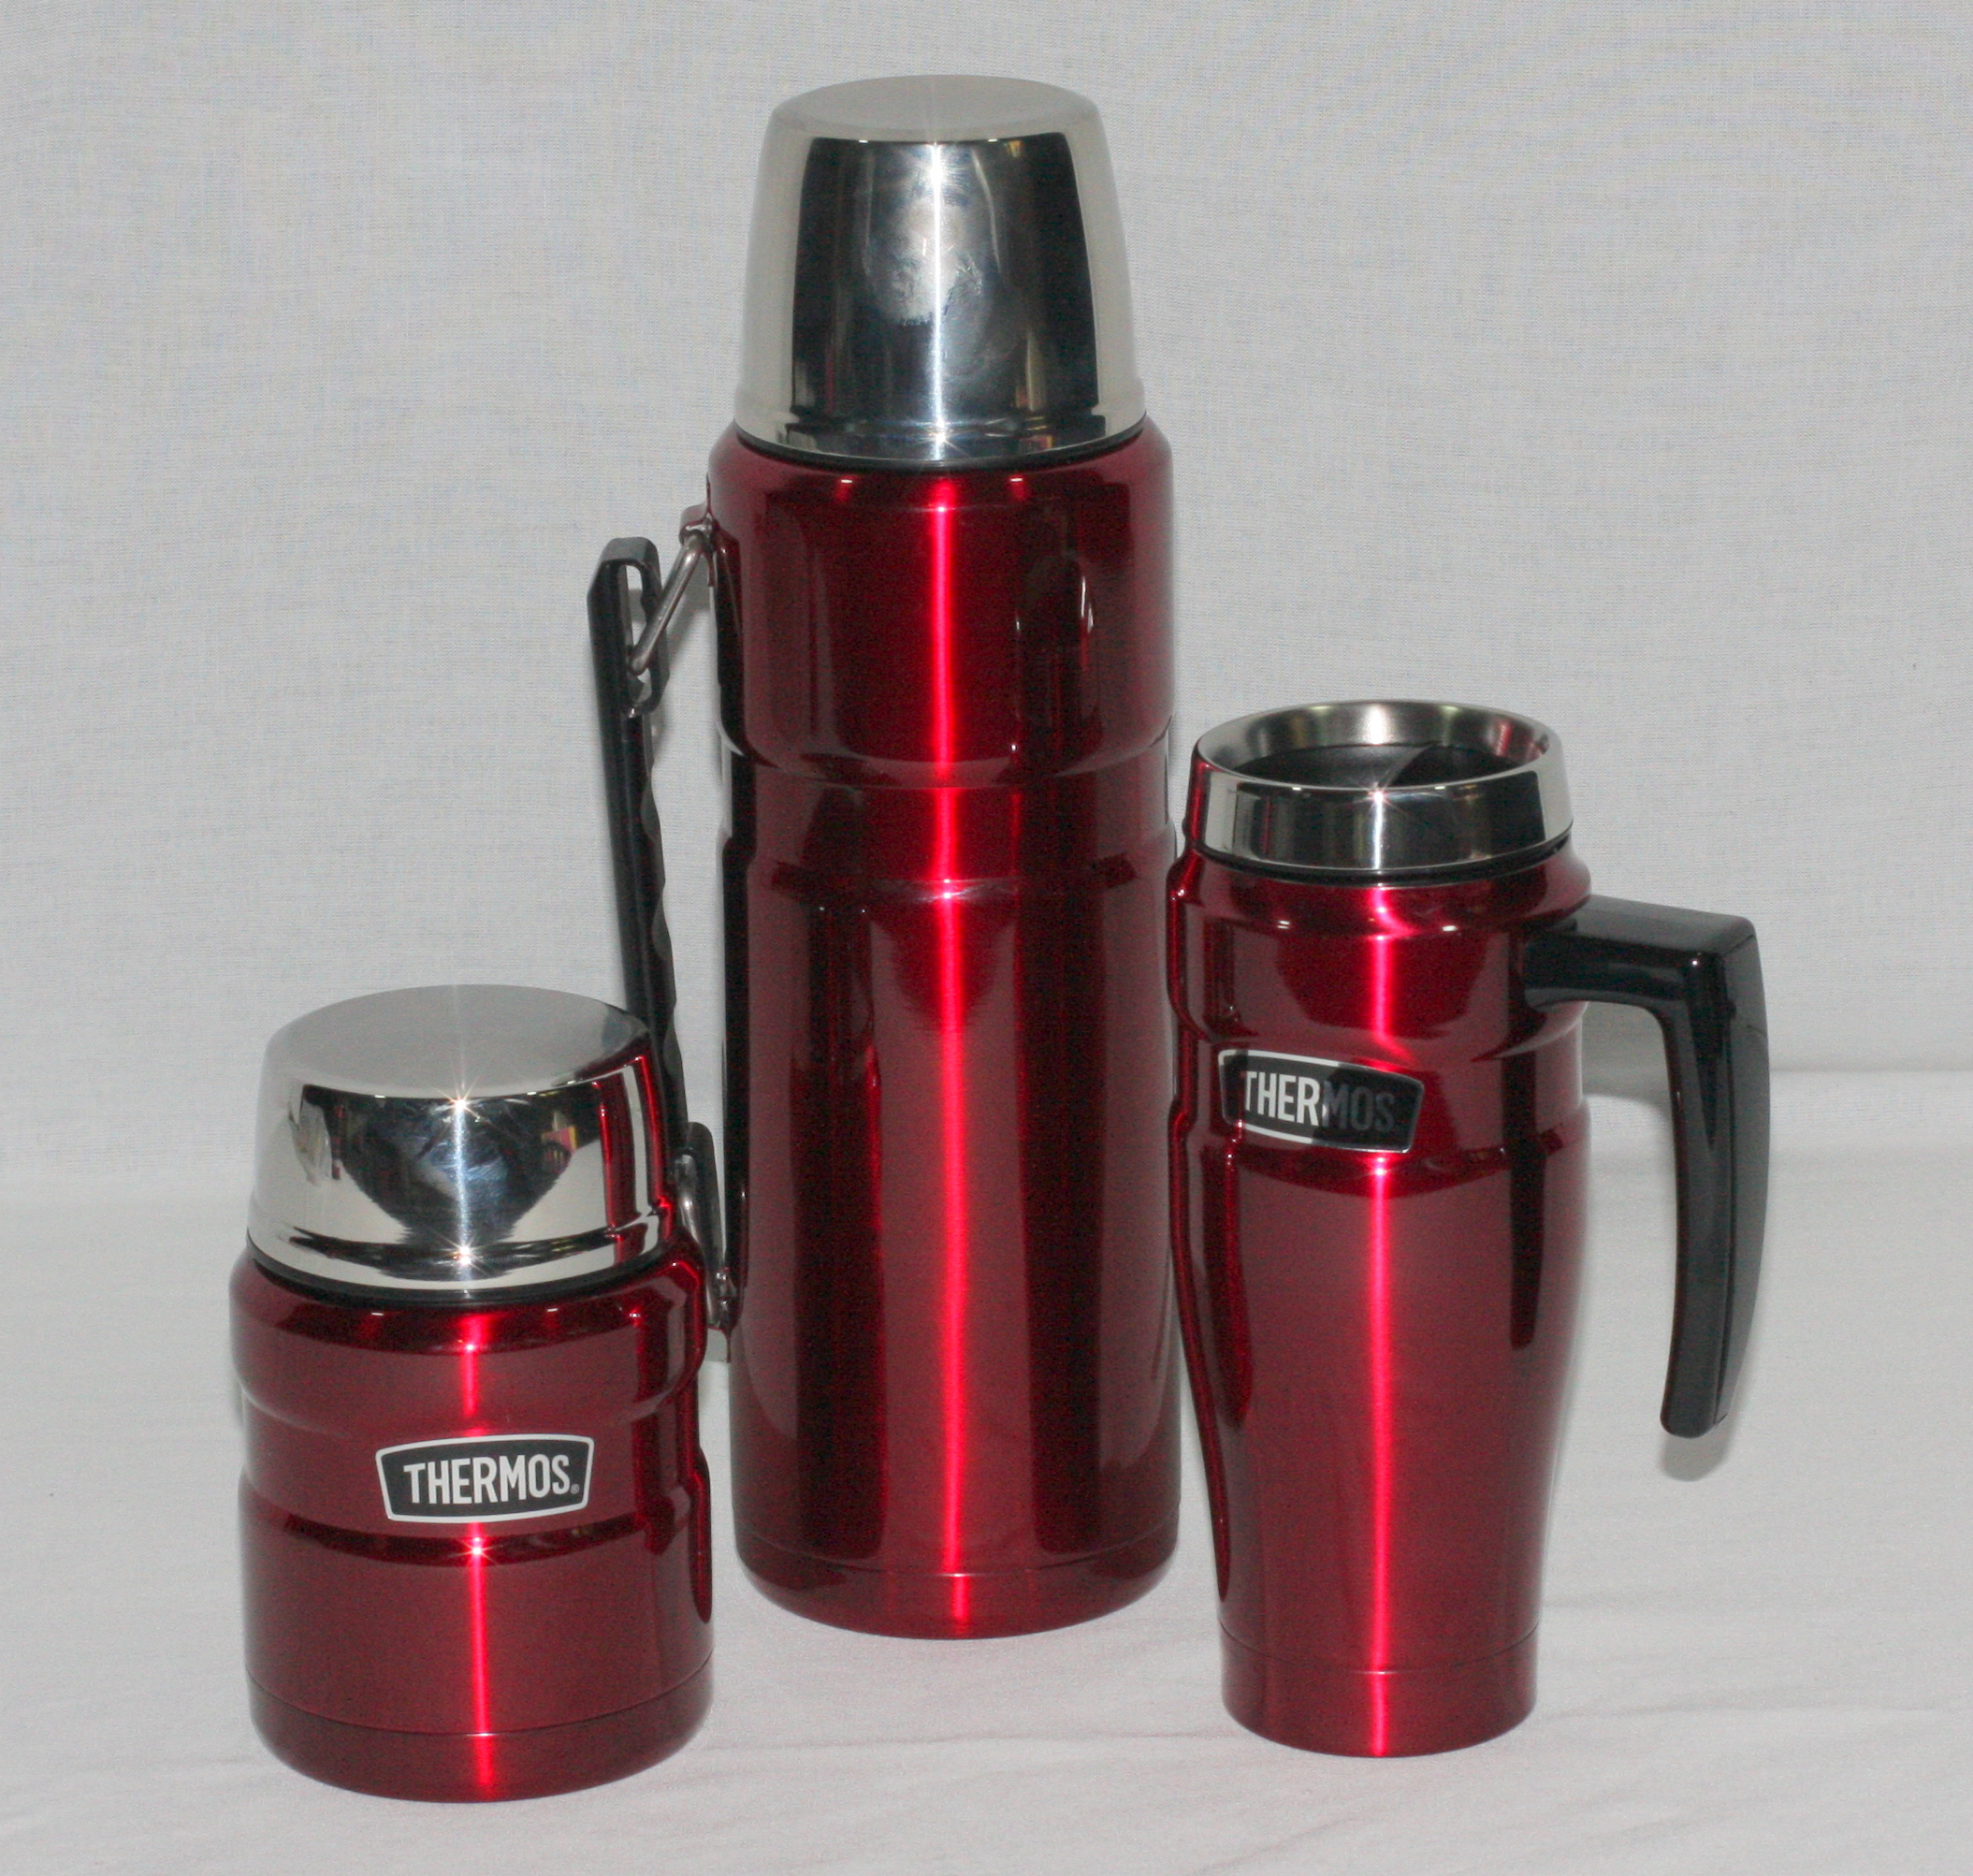 1.2 litre THERMOS Flask with a 500 ml Travel Mug and a 470 ml Food Jar in RED This is a special offer of a 1.2 litre Red Thermos Flask plus a 500 ml spill proof travel mug and a 470 ml Food Jar with a stainless steel spoon. All of these products are stainless steel and vacuum insulated for maximum heat or cold retention for the longest period.